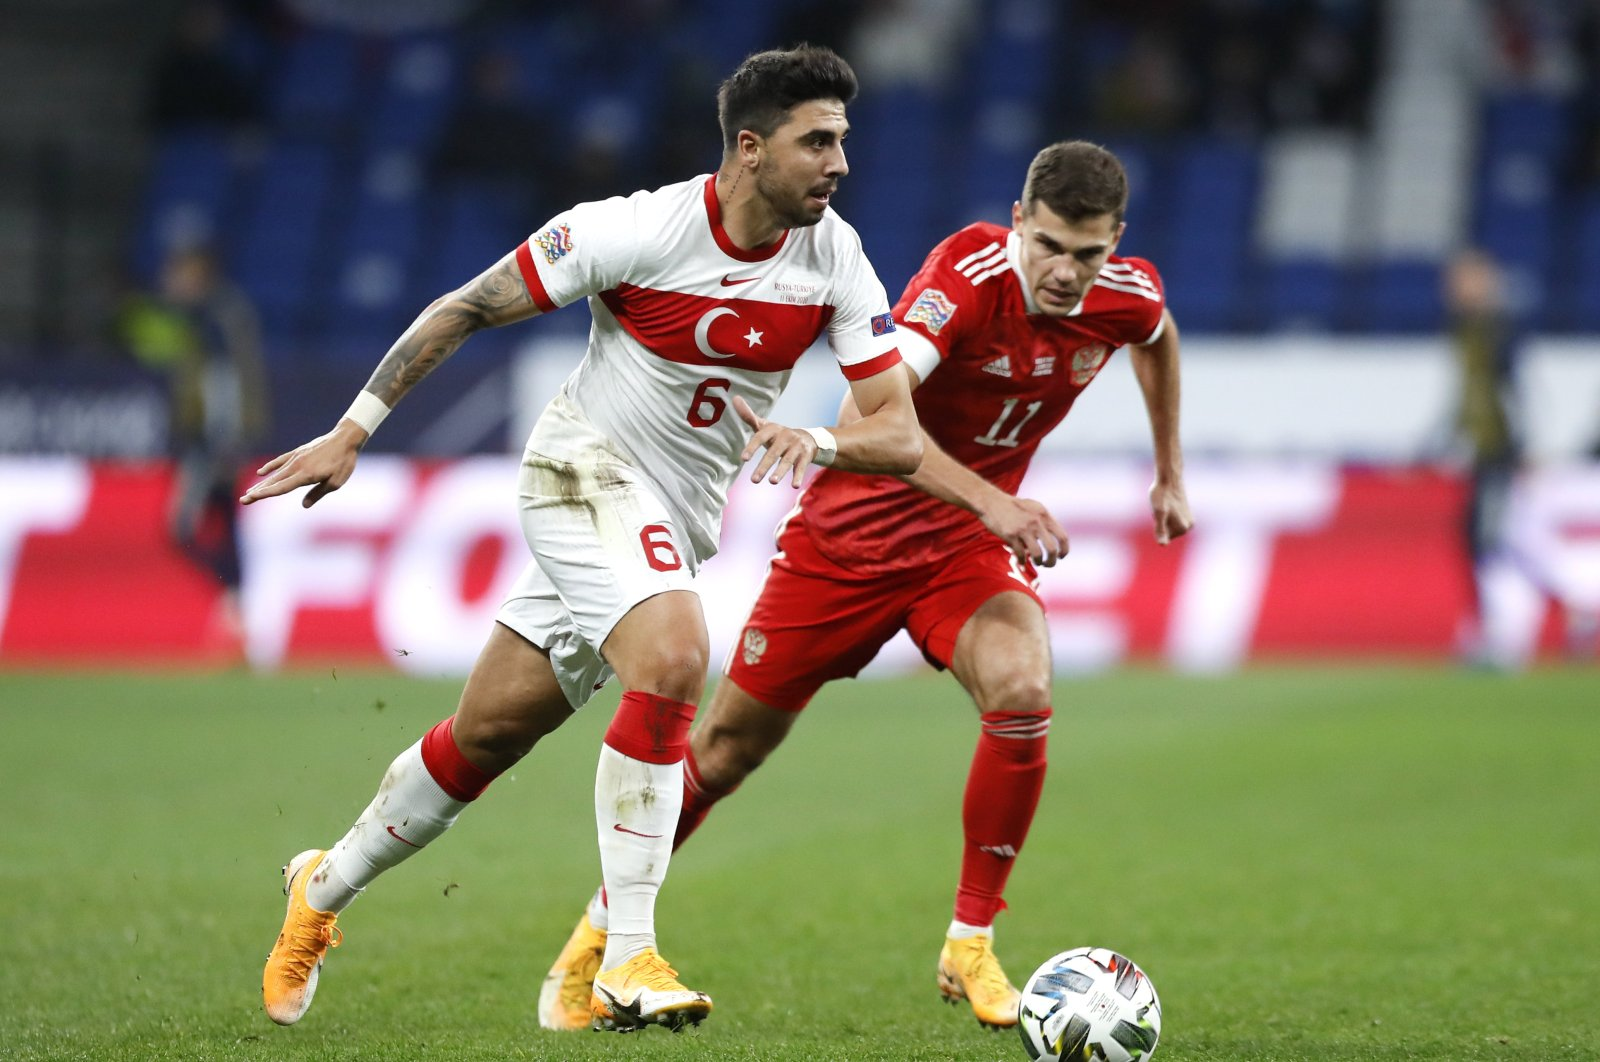 Turkey's Ozan Tufan (L) dribbles the ball past Russia's Roman Zobnin during a UEFA Nations League match, in Moscow, Russia, Oct. 11, 2020. (AP Photo)